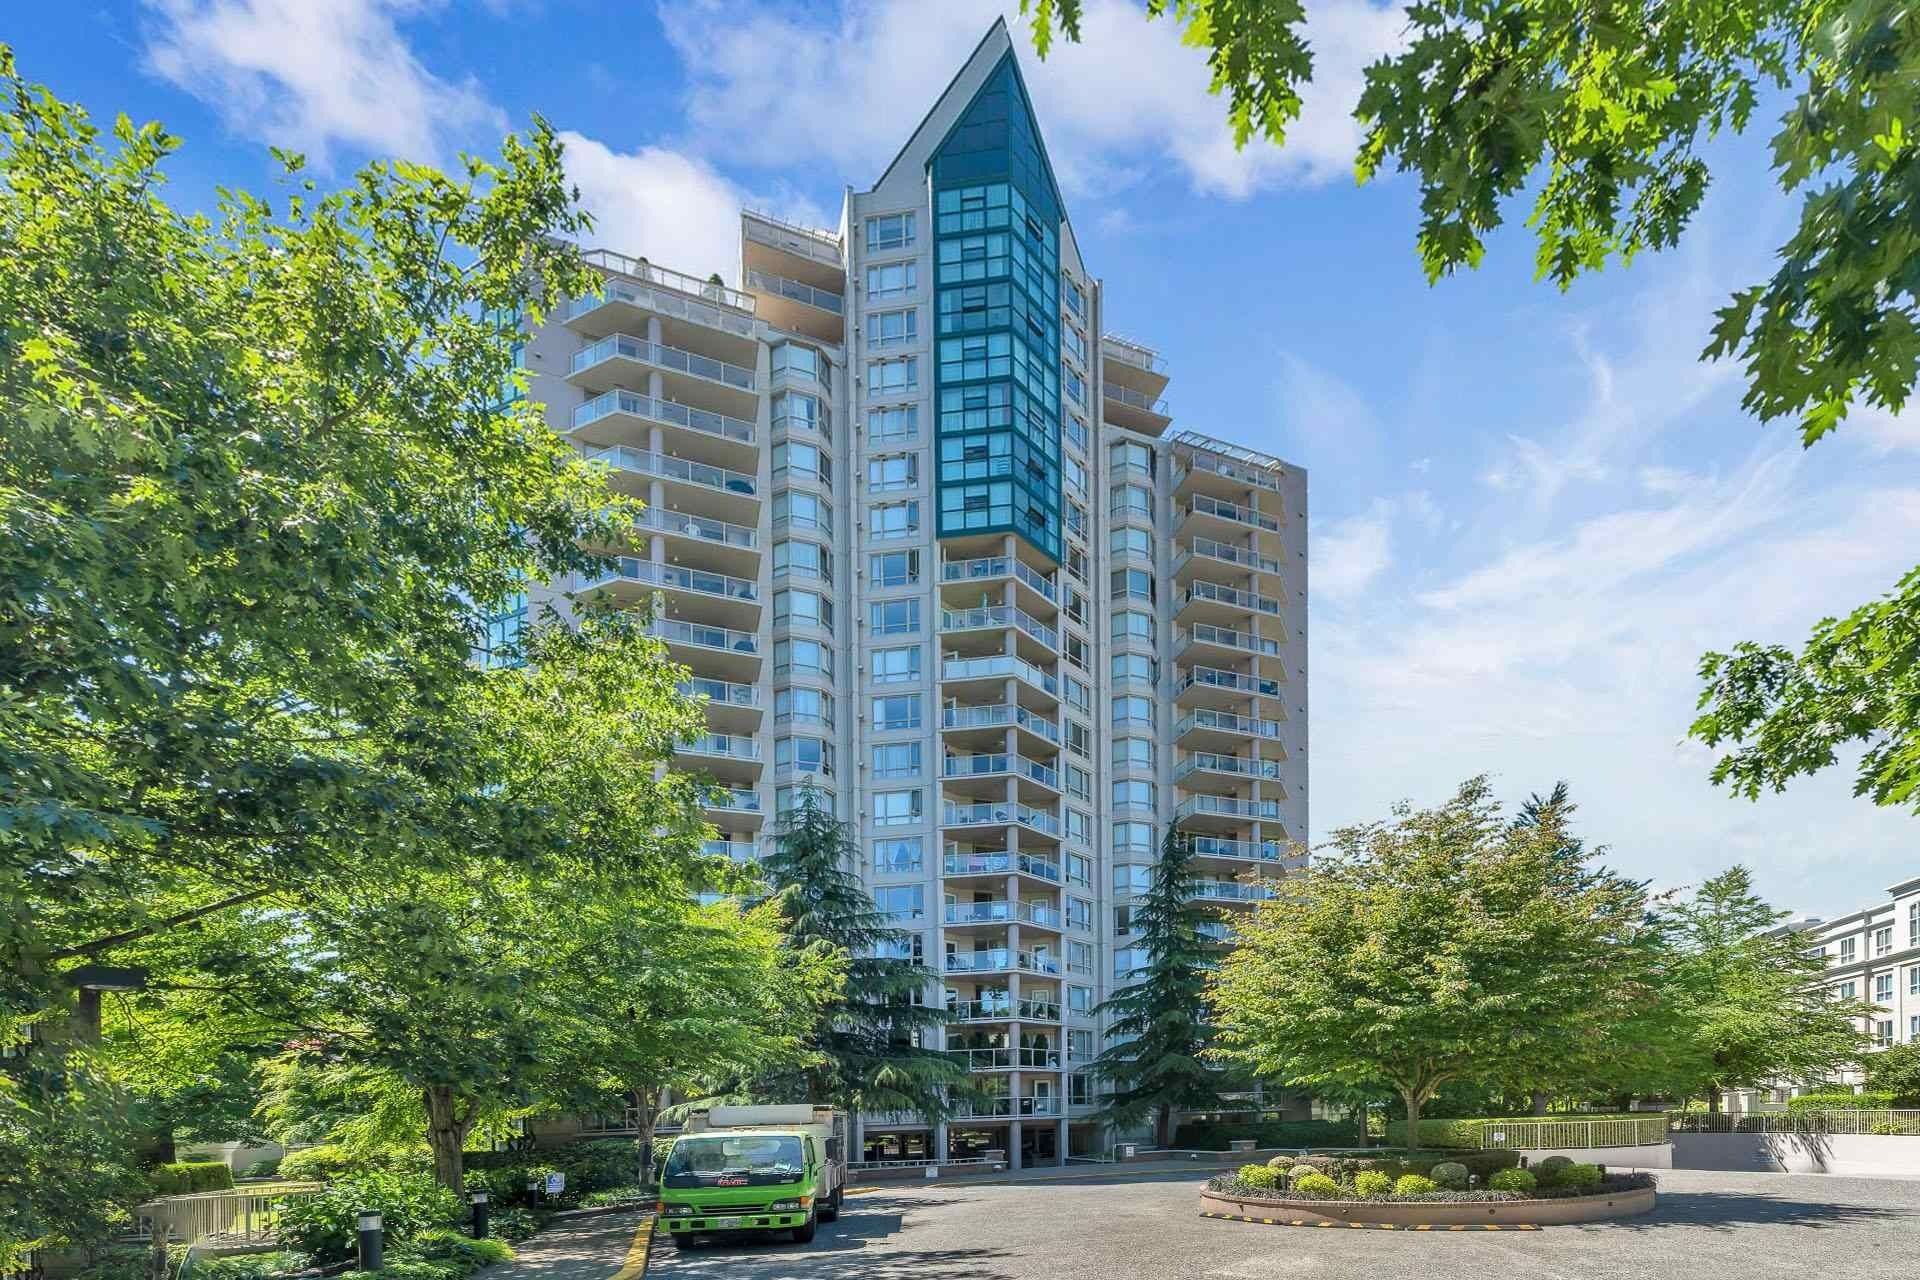 """Main Photo: 109 1196 PIPELINE Road in Coquitlam: North Coquitlam Condo for sale in """"THE HUDSON"""" : MLS®# R2597249"""